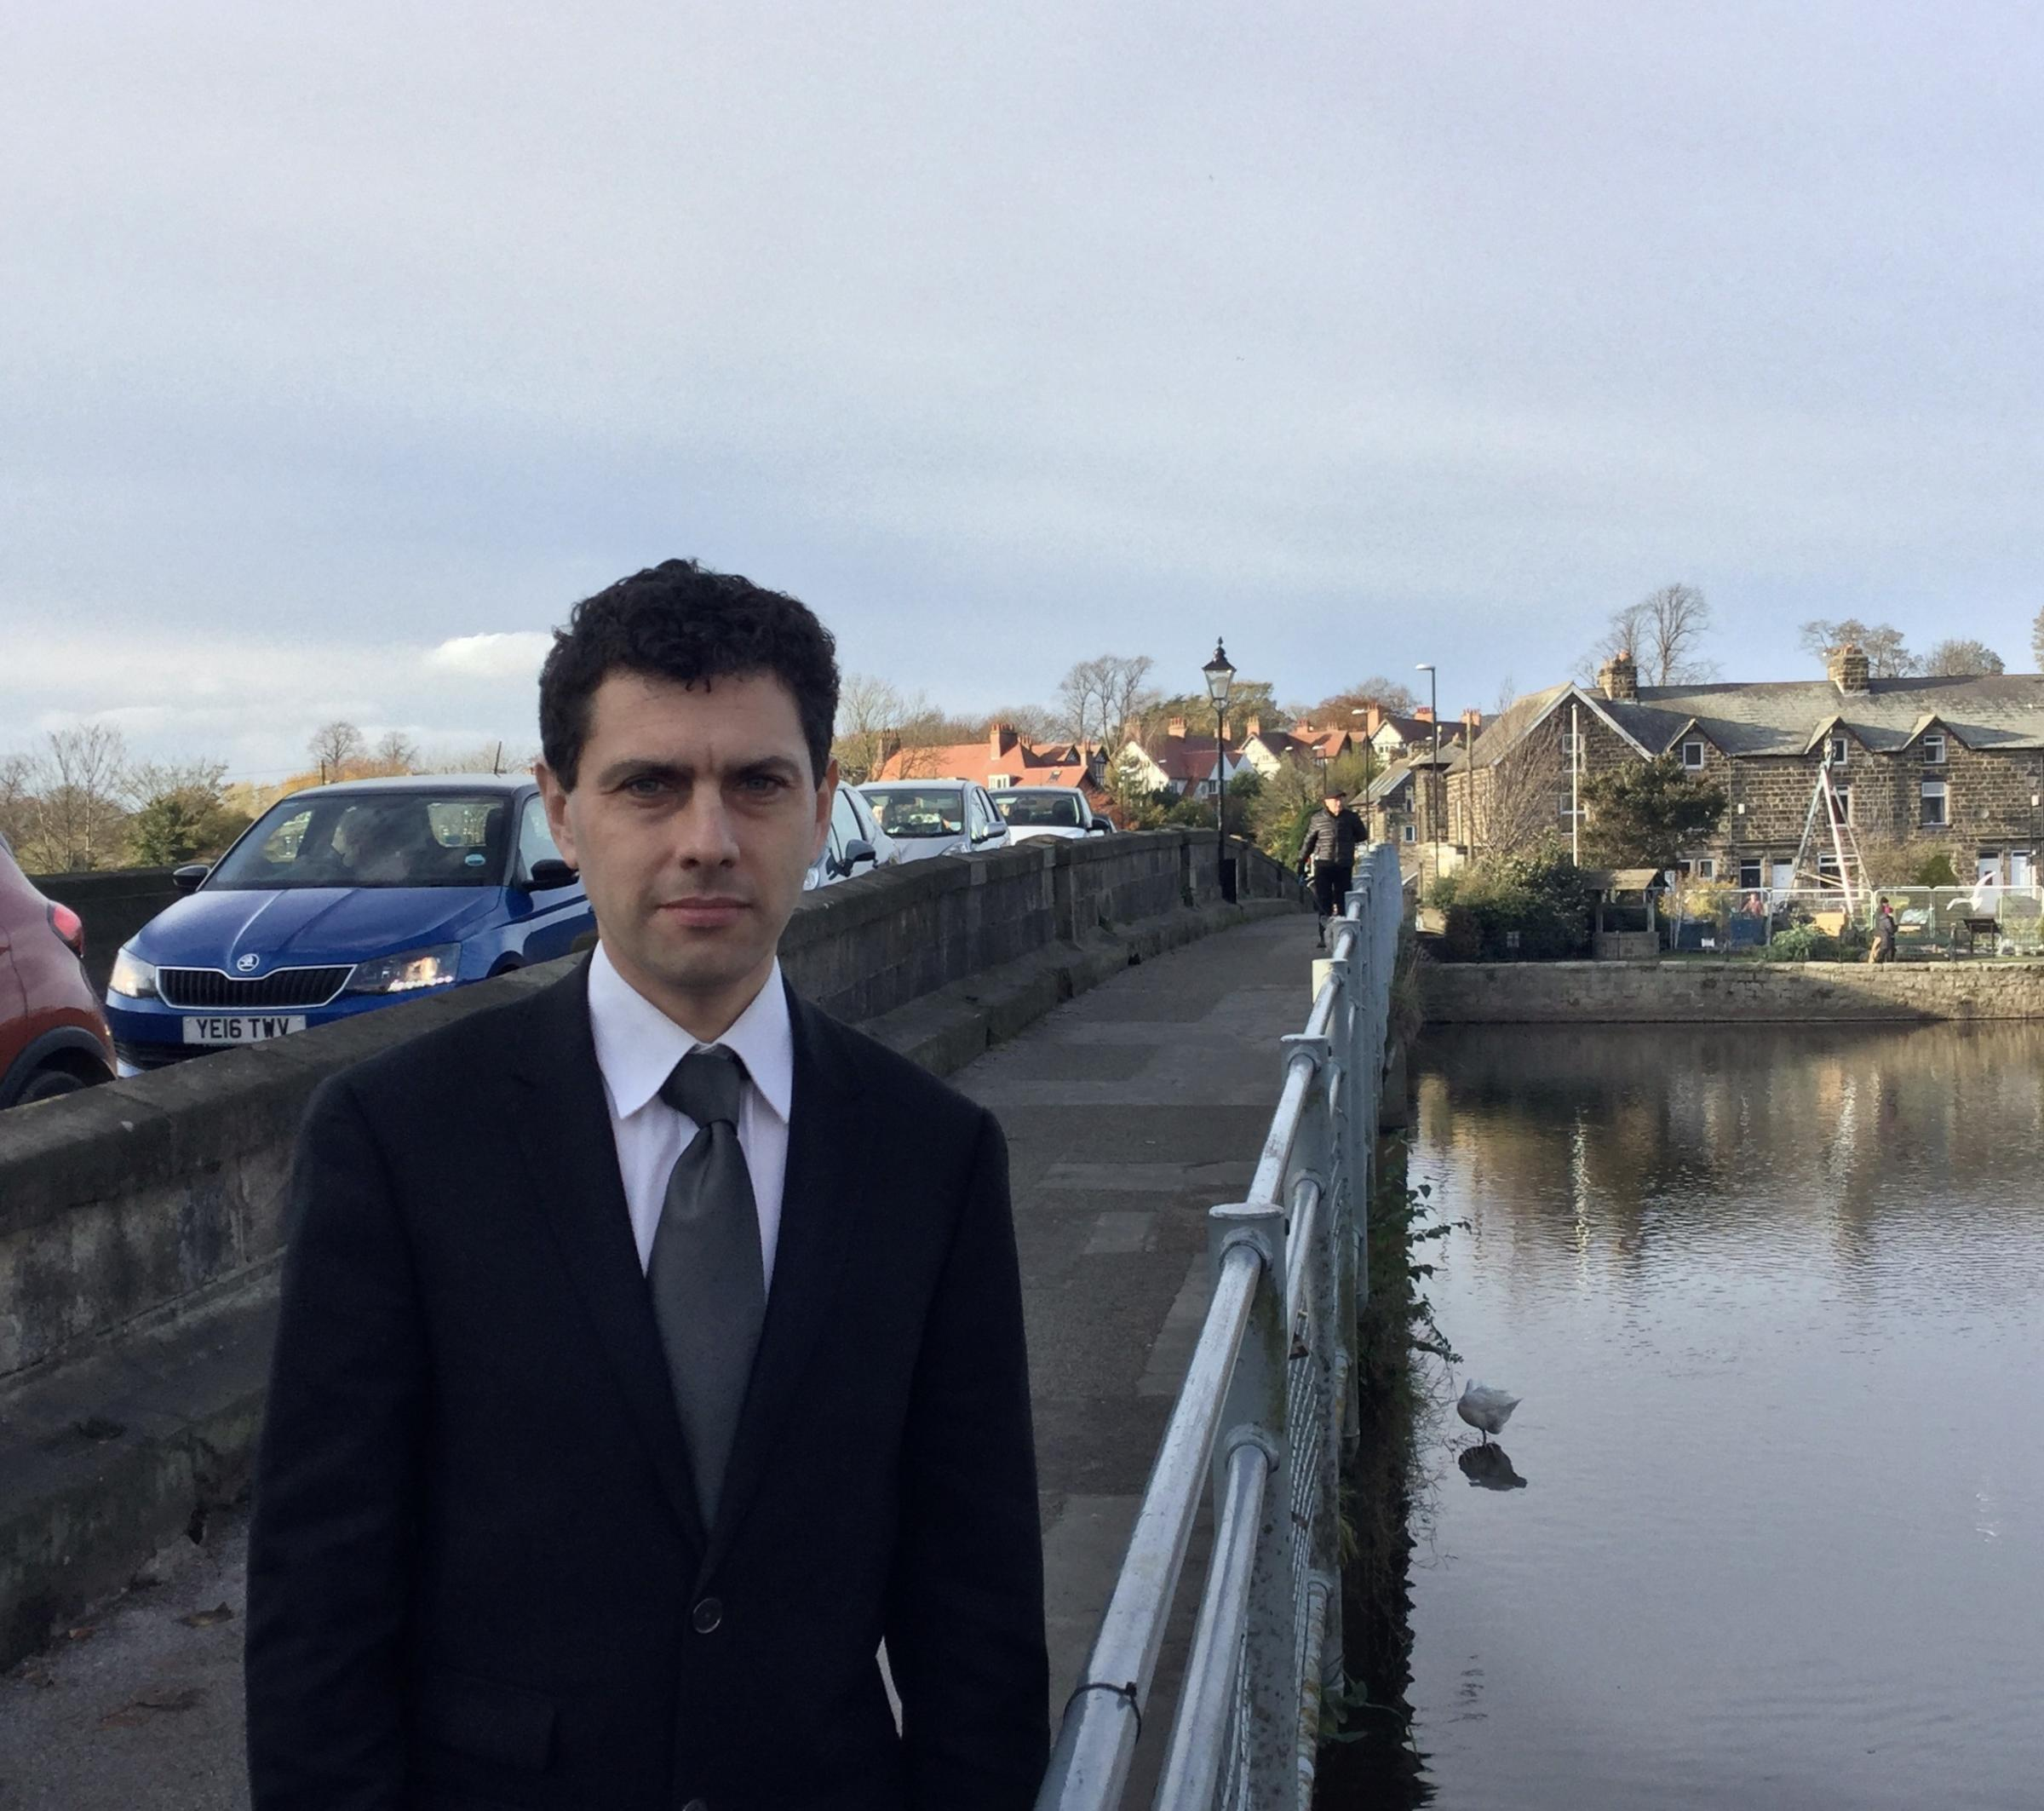 MP Alex Sobel on Otley Bridge